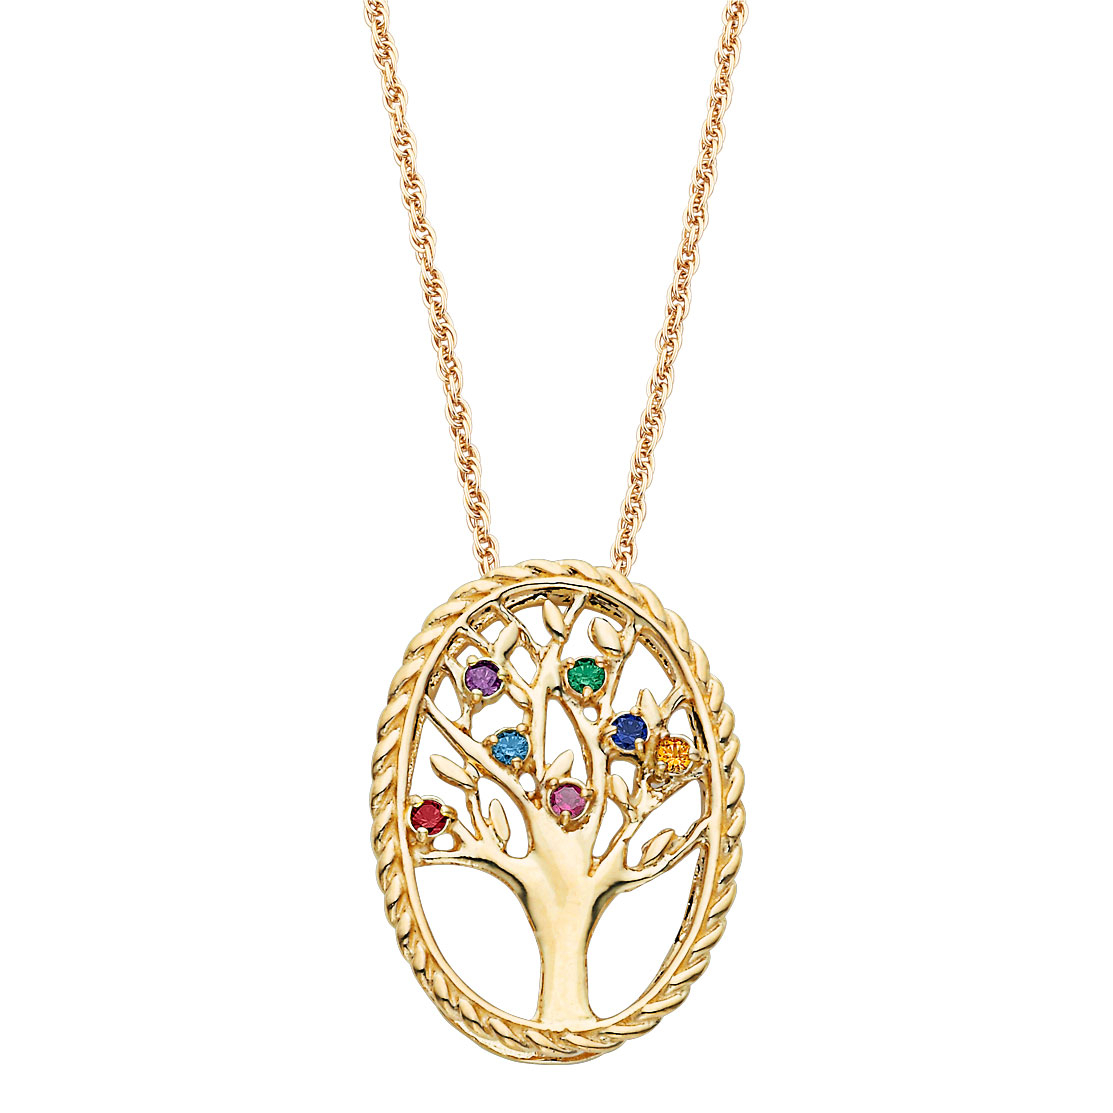 Mother's Simulated Birthstone Family Tree Pendant In Sterling Silver With  18K Gold Plate (2 10 Stones) – 20"